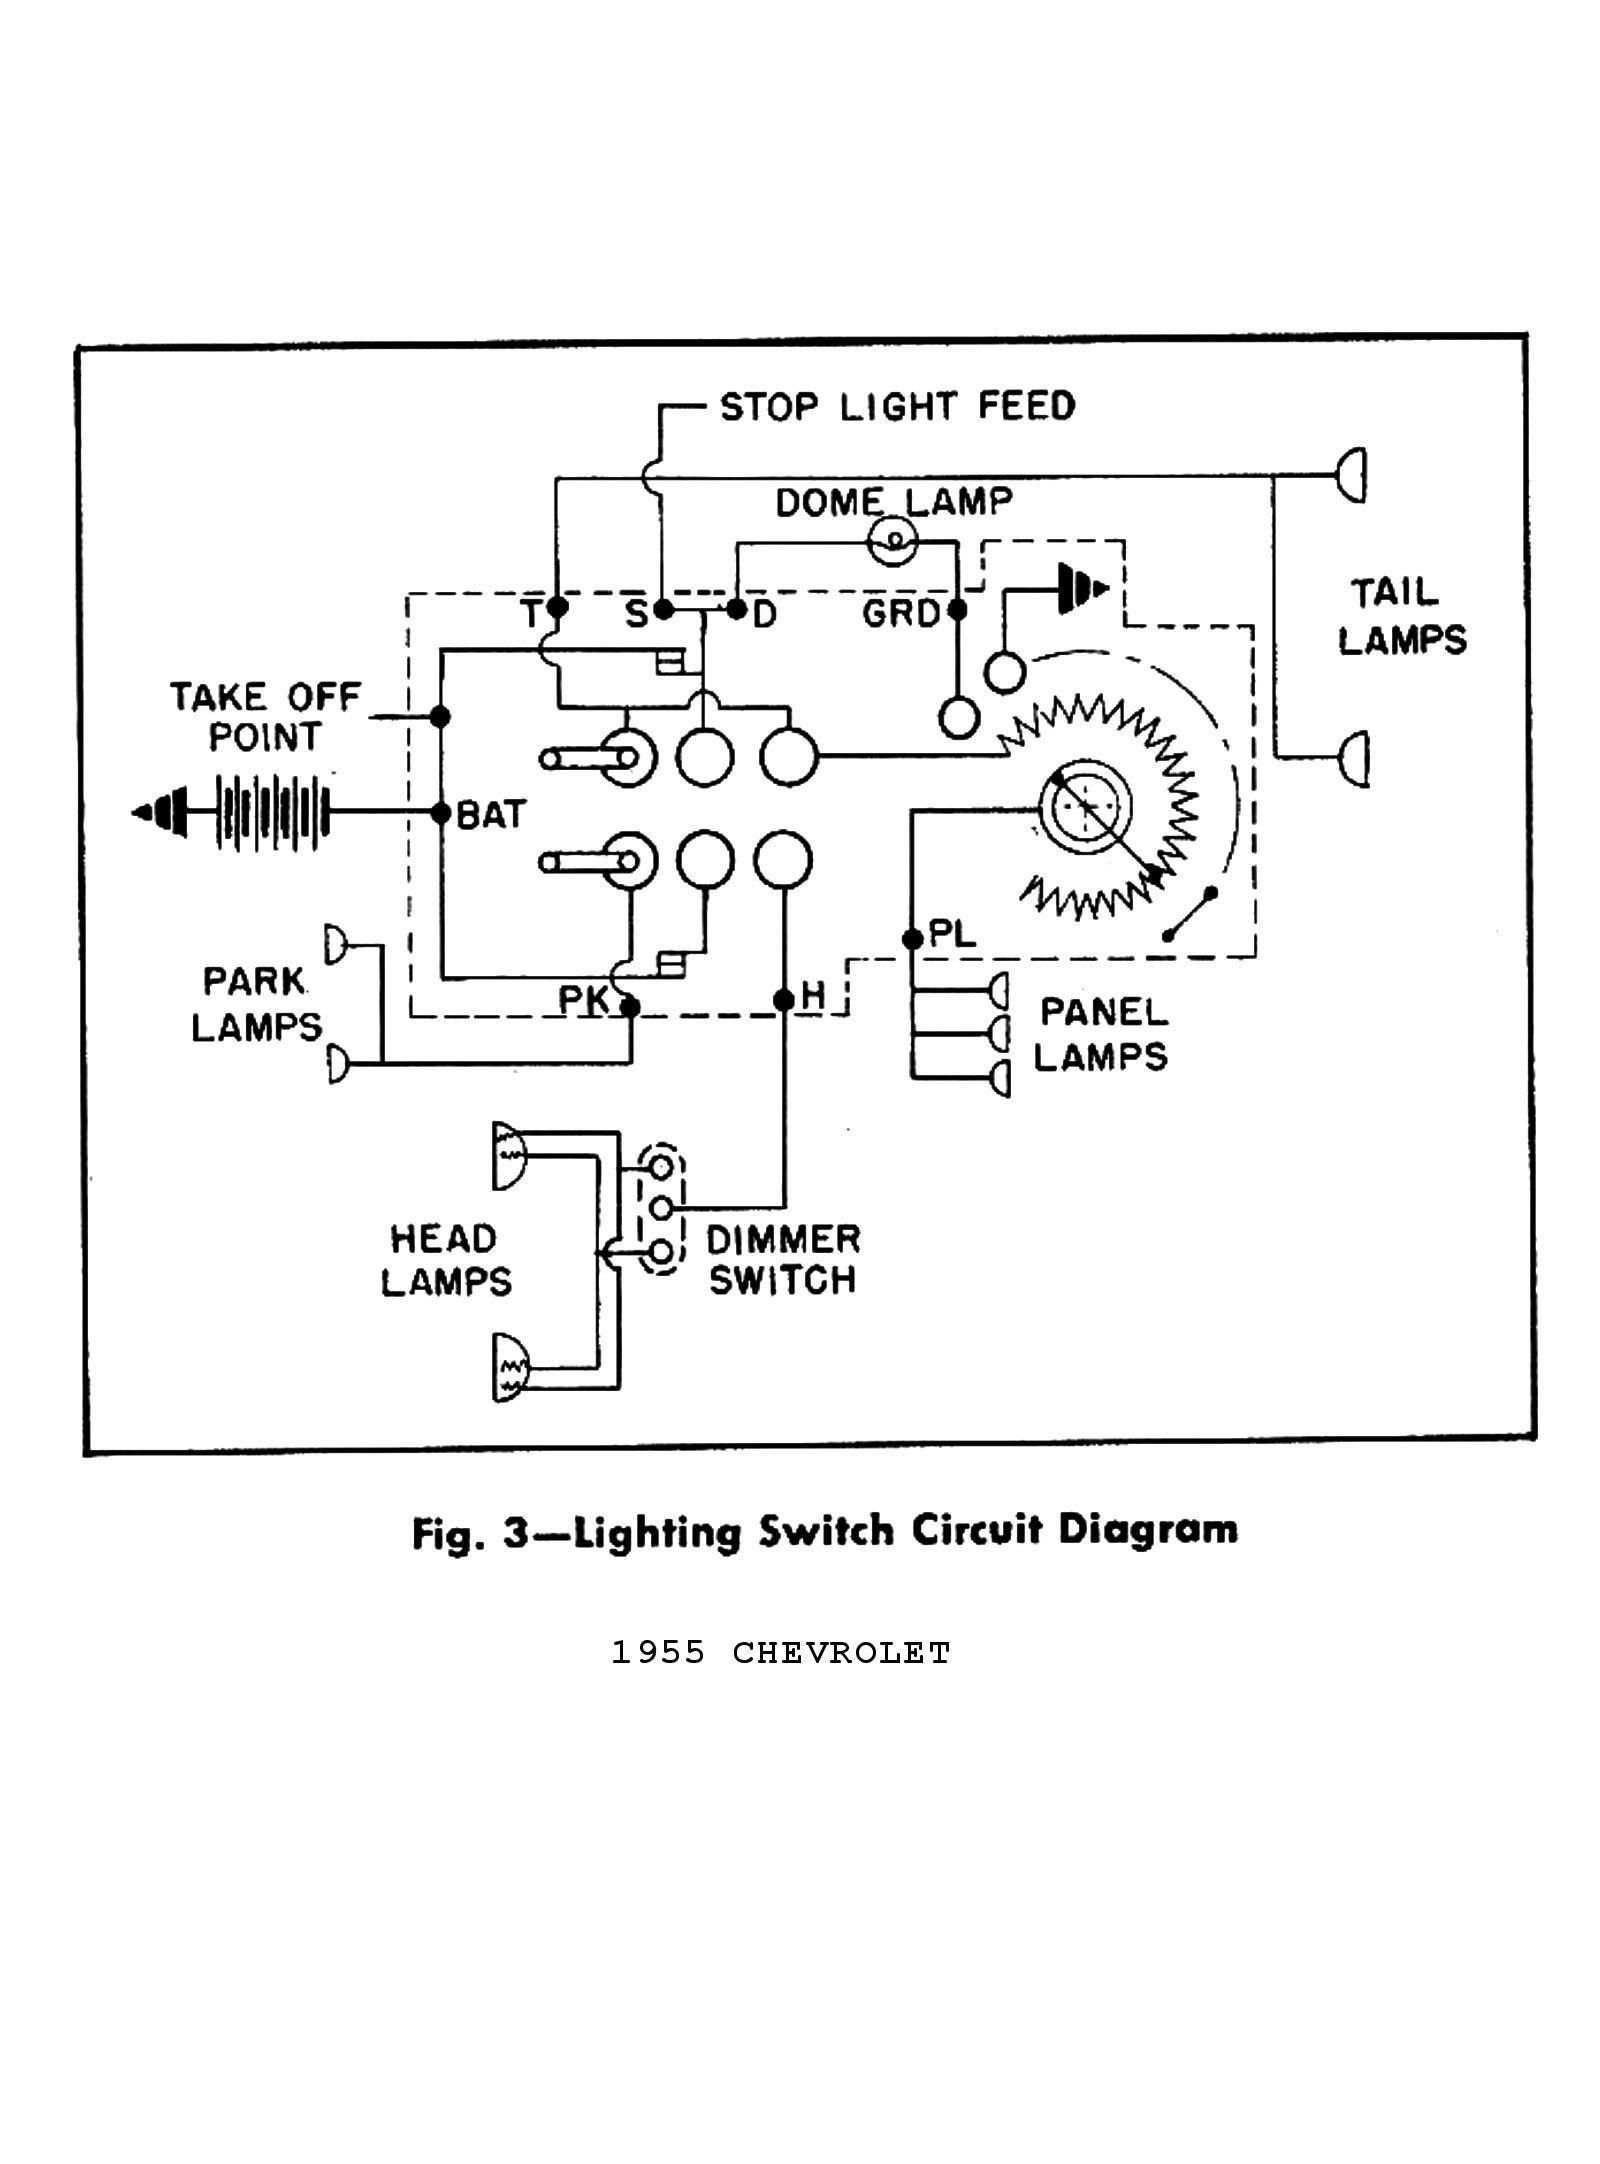 Beautiful Sbc Alternator Wiring Diagram Diagrams Digramssample Diagramimages Wiringdiagramsample Wiri Light Switch Wiring Diagram Electrical Switch Wiring